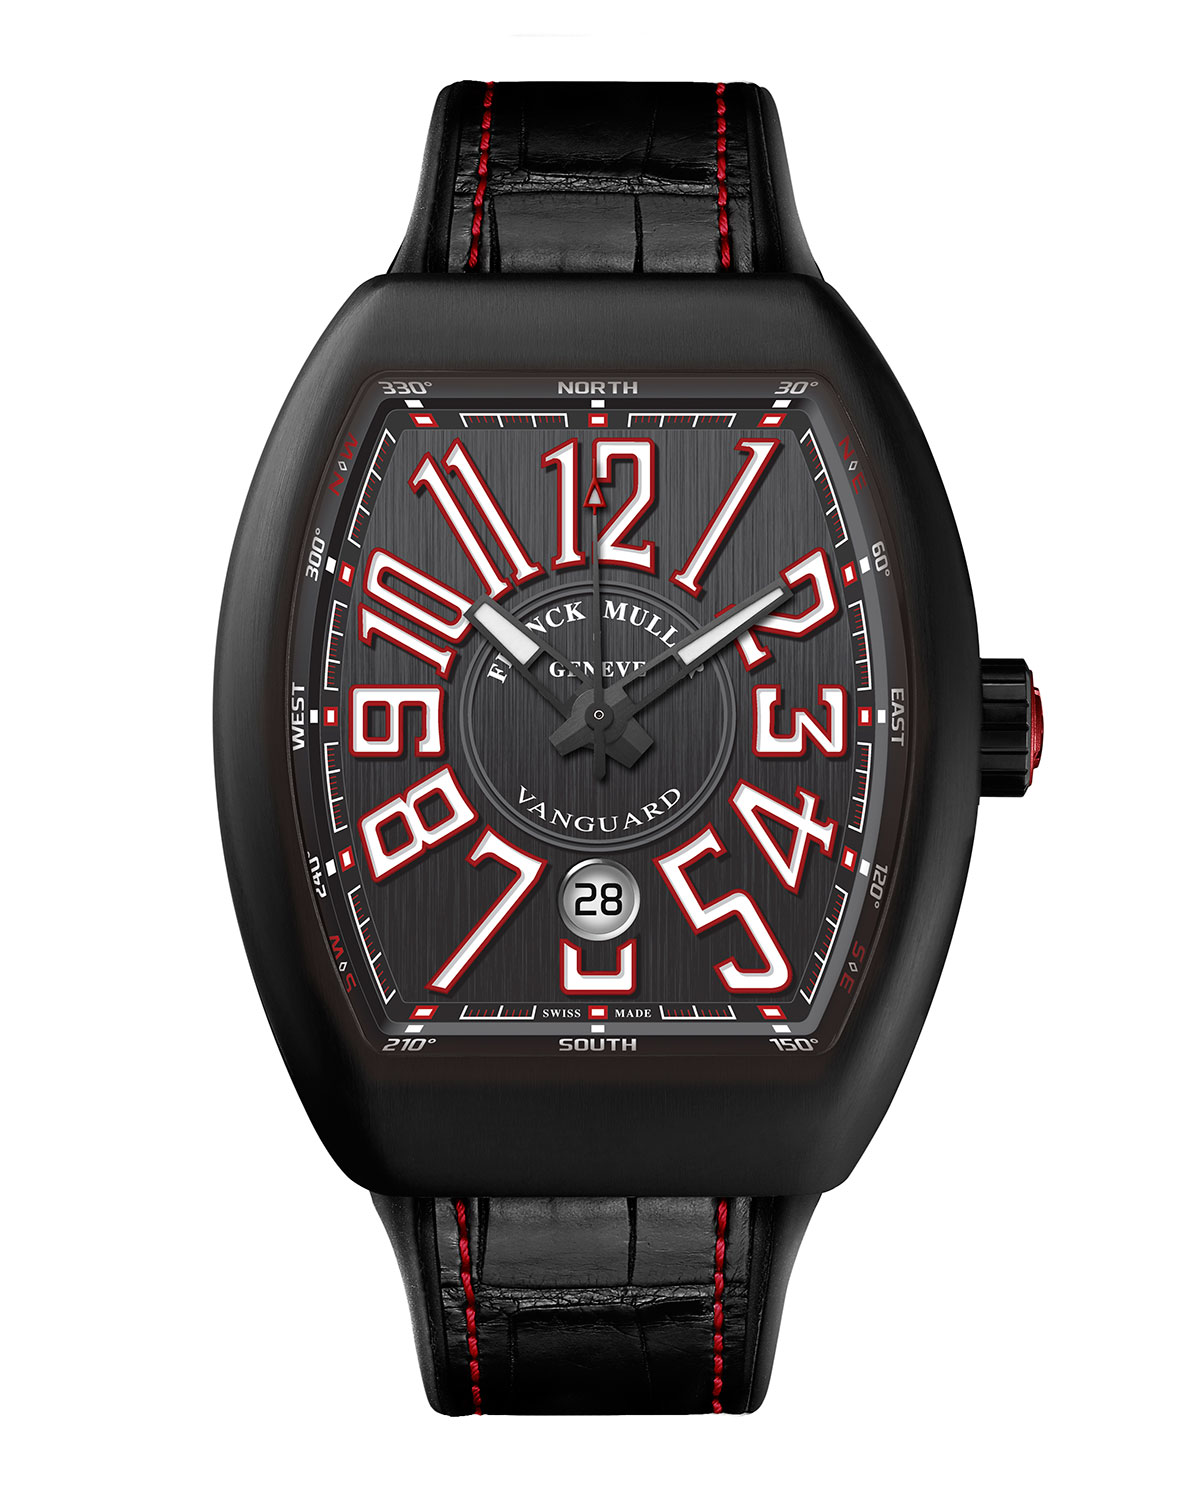 Vanguard Watch With Alligator Strap, Black/Red by Franck Muller